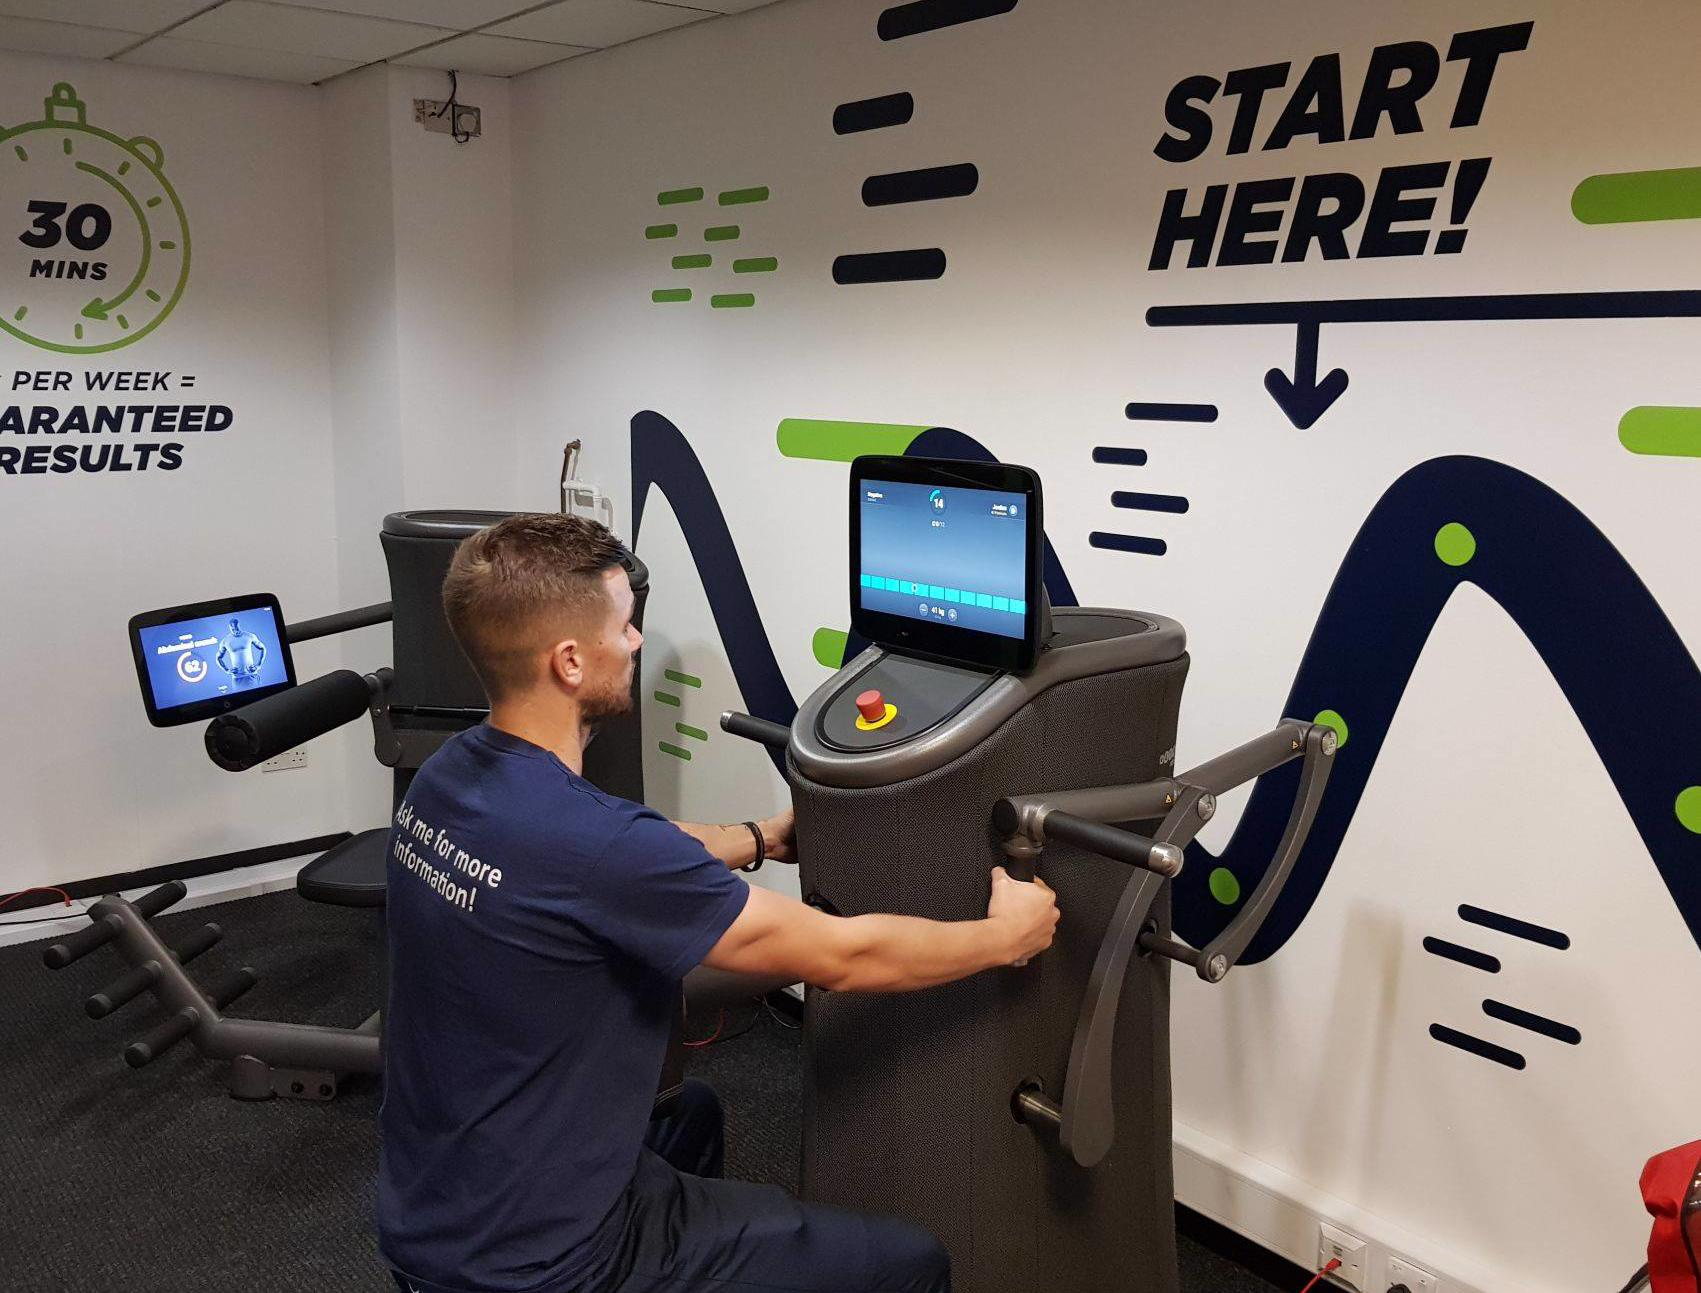 Image shows fitness instructor Jordan using the Express fitness machines